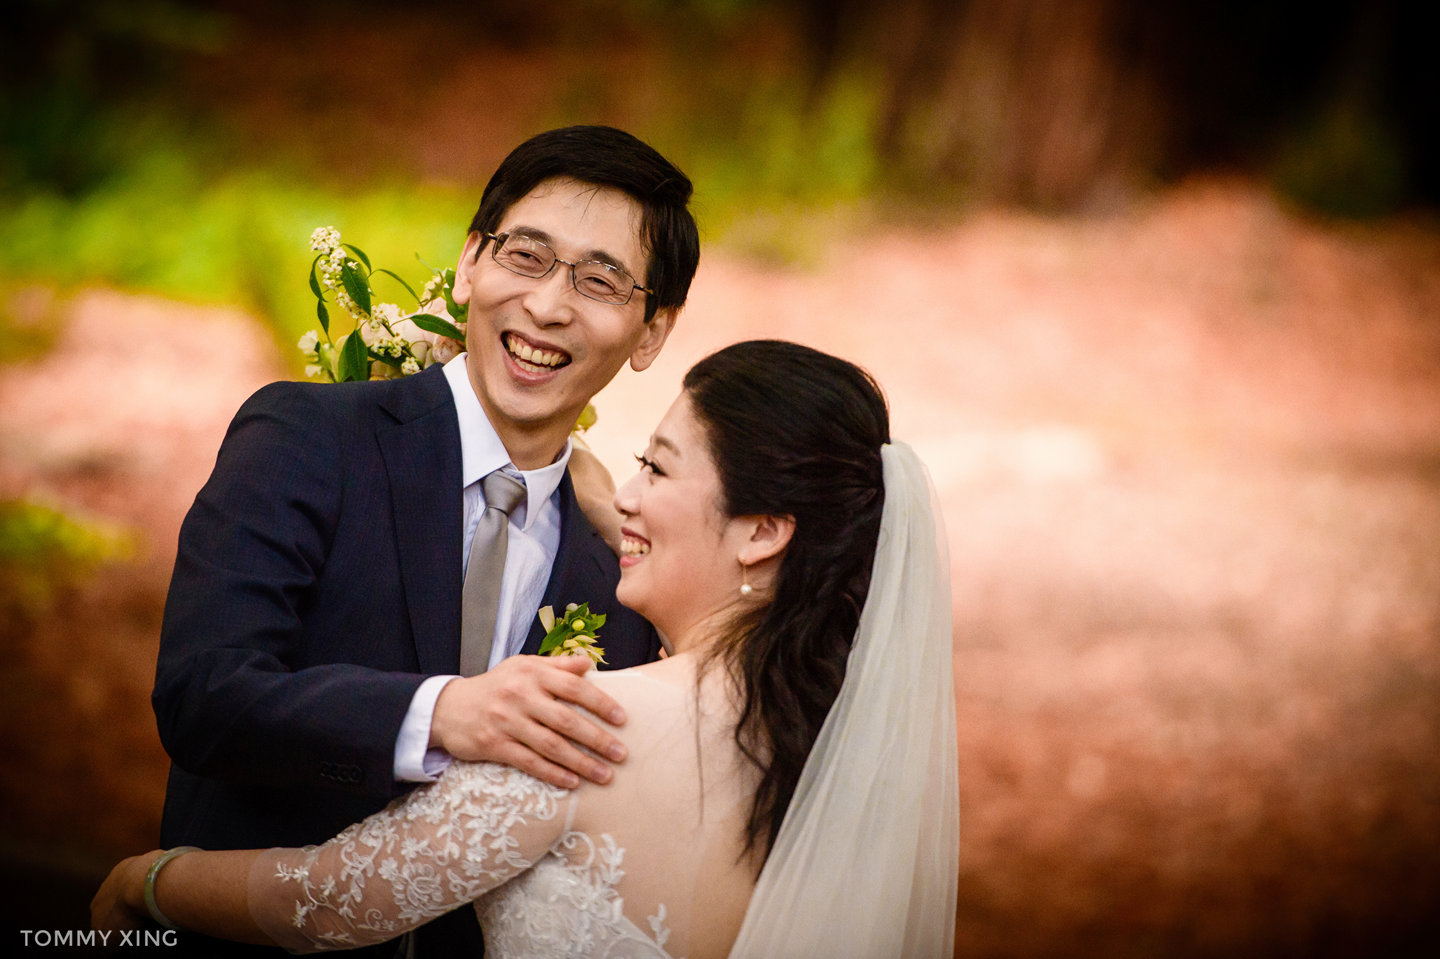 San Francisco Wedding Photography Valley Presbyterian Church WEDDING Tommy Xing Photography 洛杉矶旧金山婚礼婚纱照摄影师100.jpg